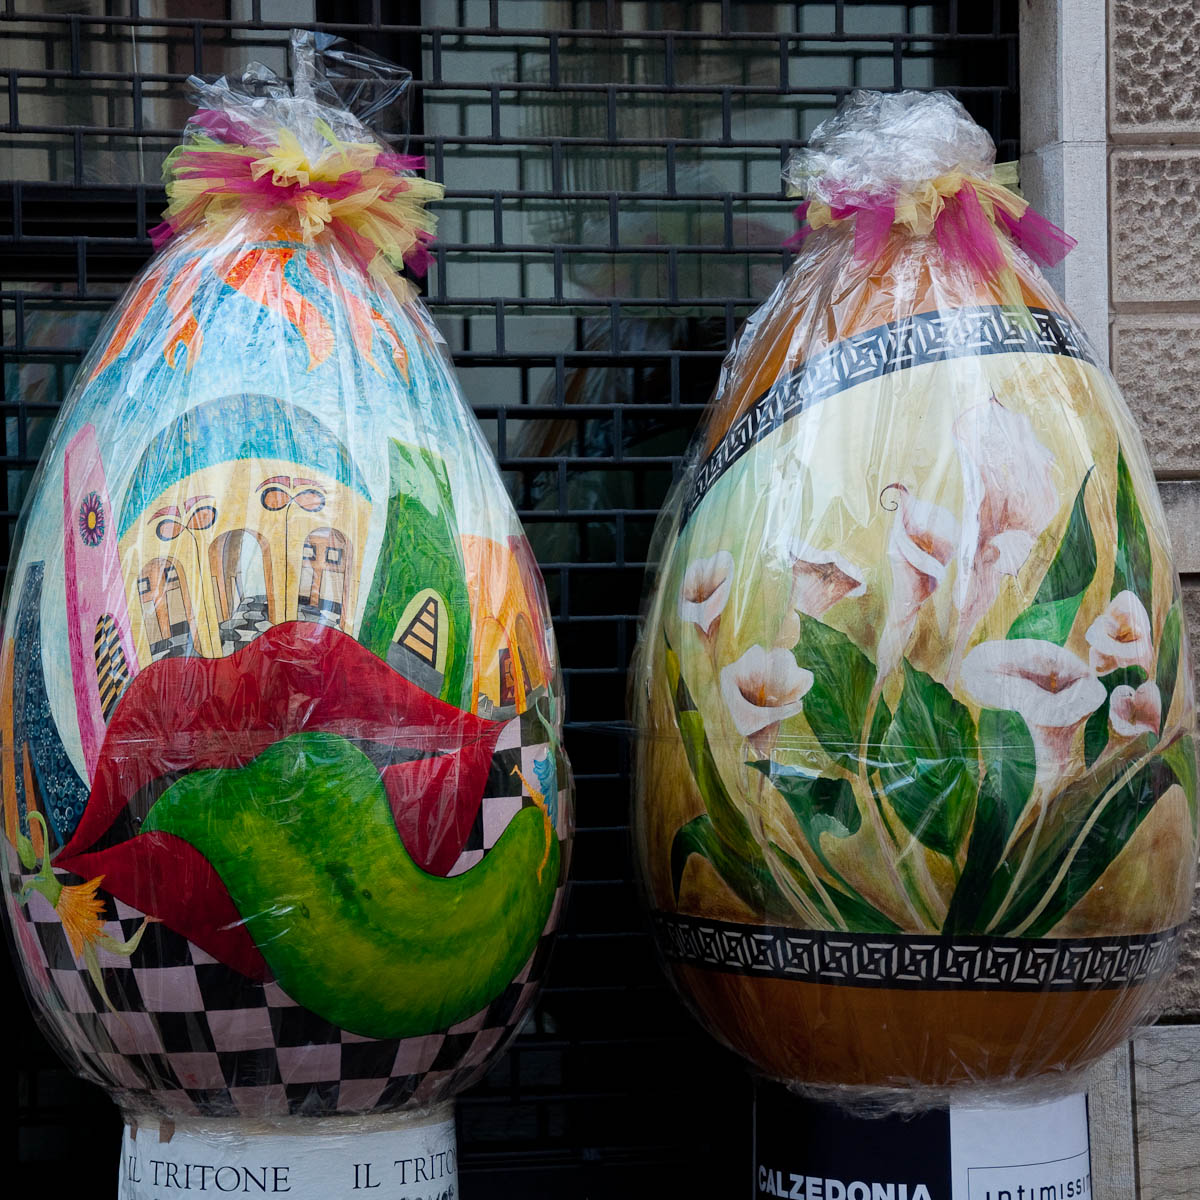 Huge eggs decorating Vicenza, Veneto, Italy